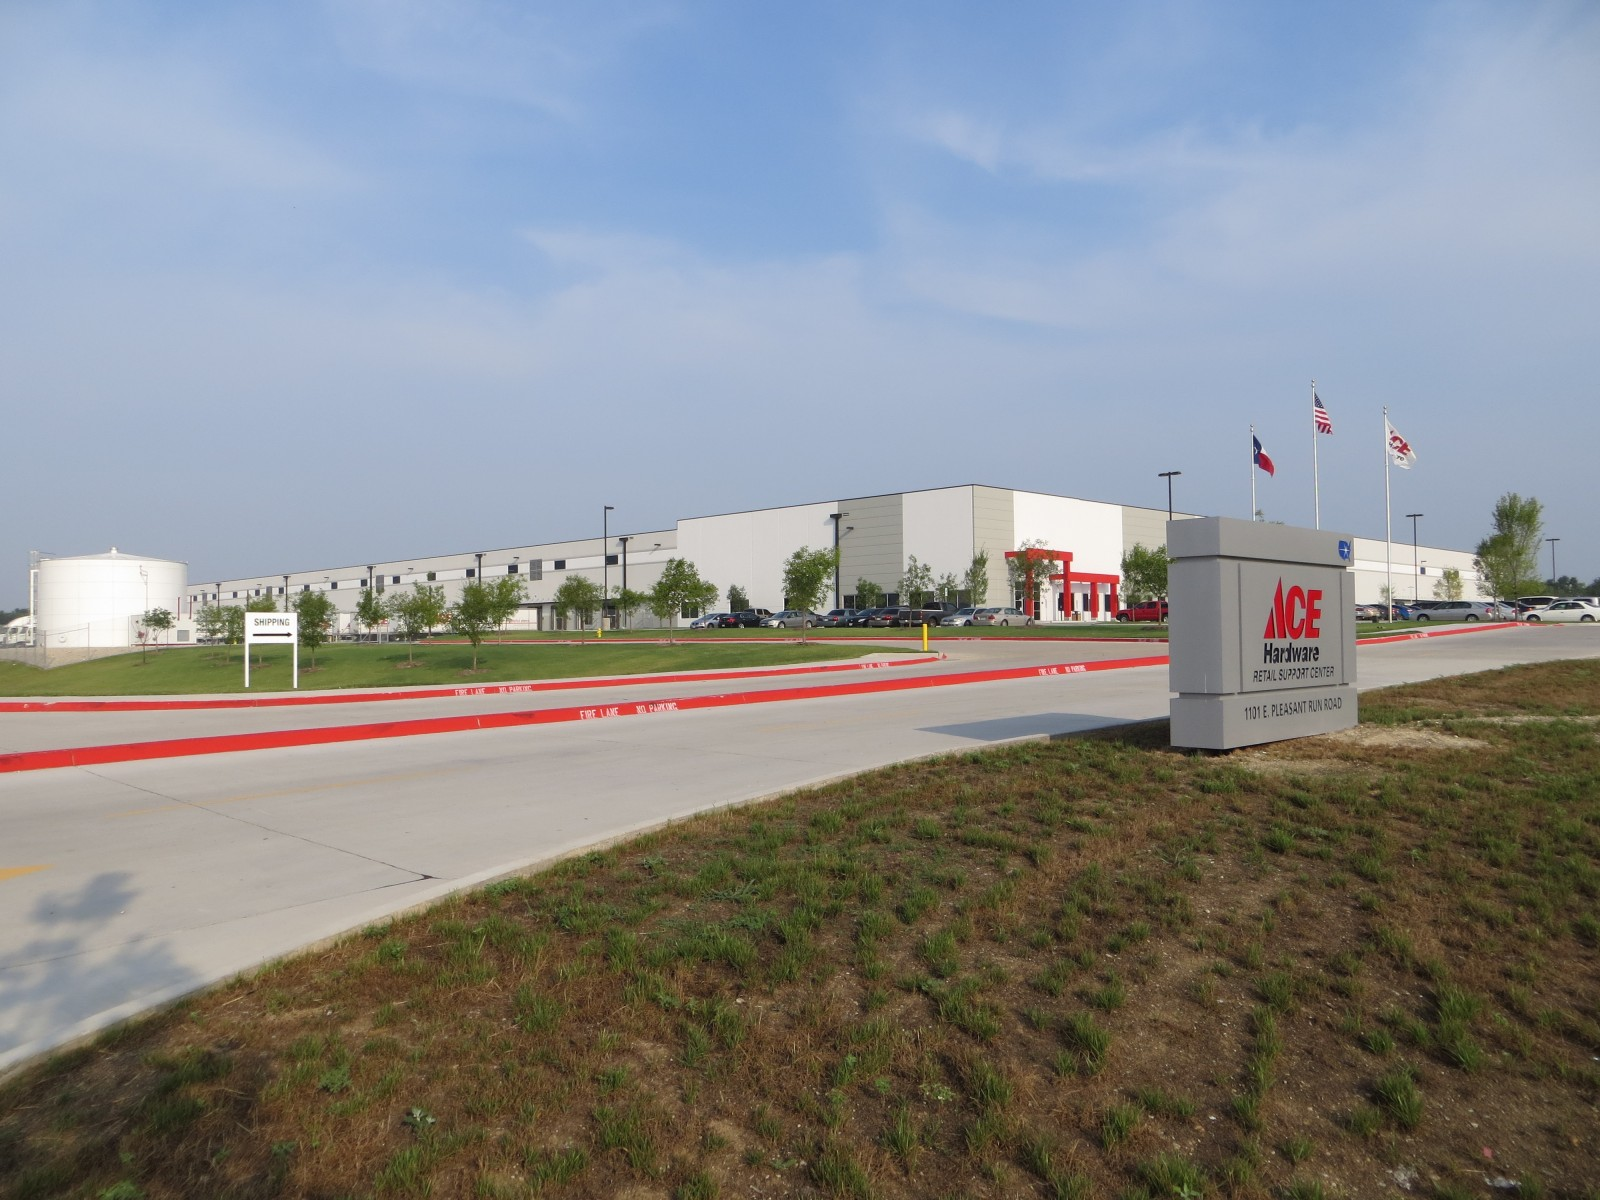 Admirable Ace Hardware Announces Expansion Plans For Its Distribution Evergreenethics Interior Chair Design Evergreenethicsorg